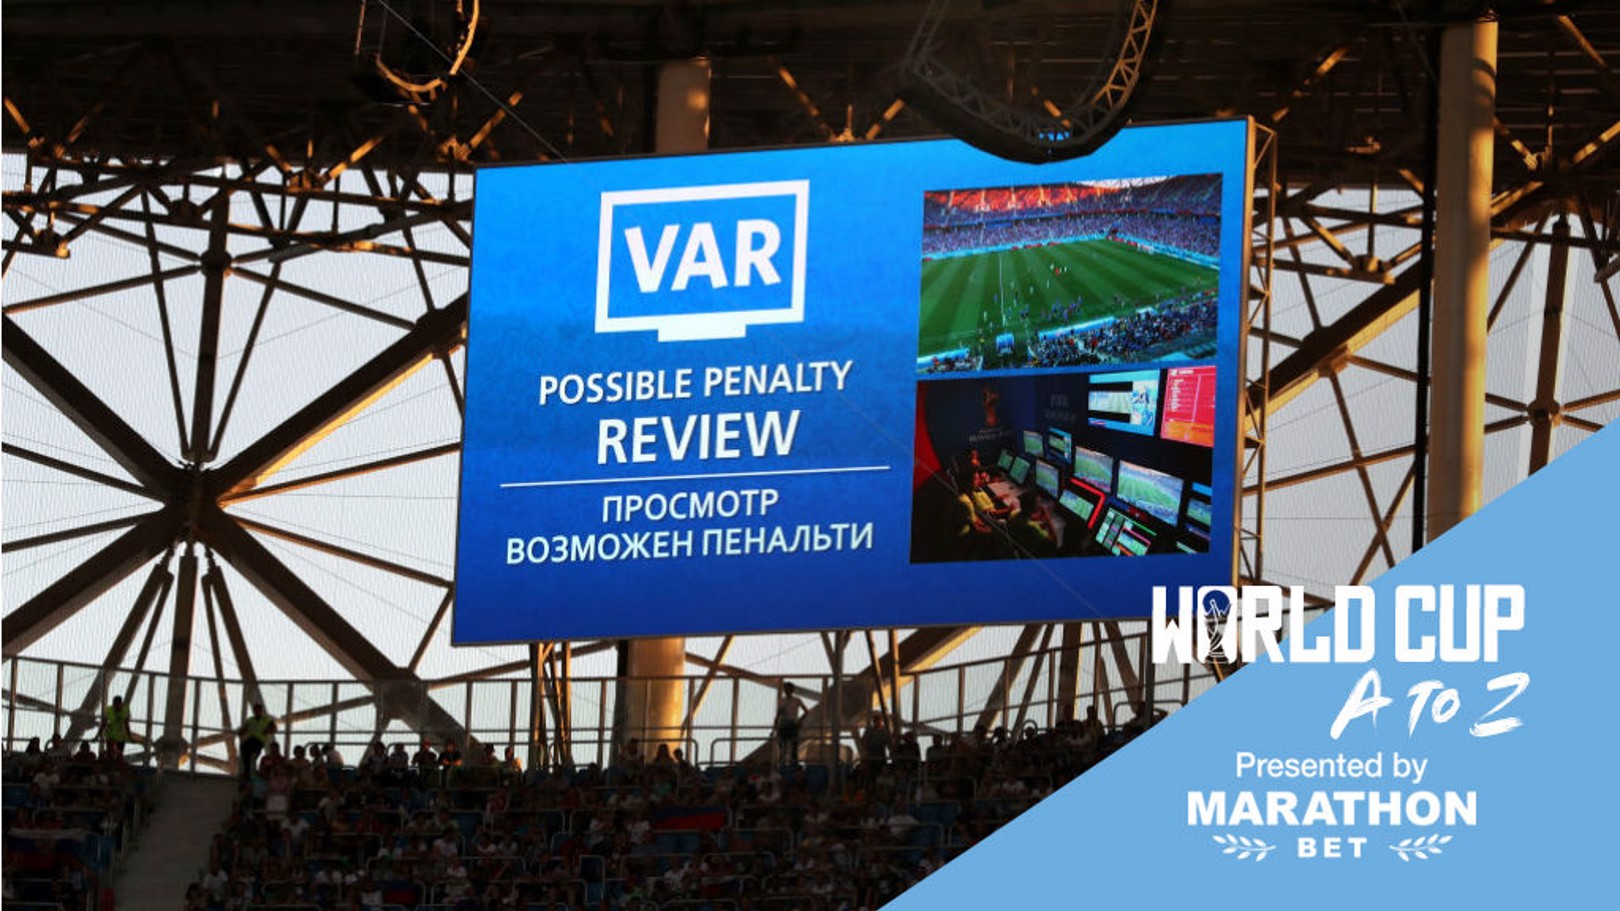 PLAY IT AGAIN: The advent of VAR has only helped add to the drama of the World Cup finals